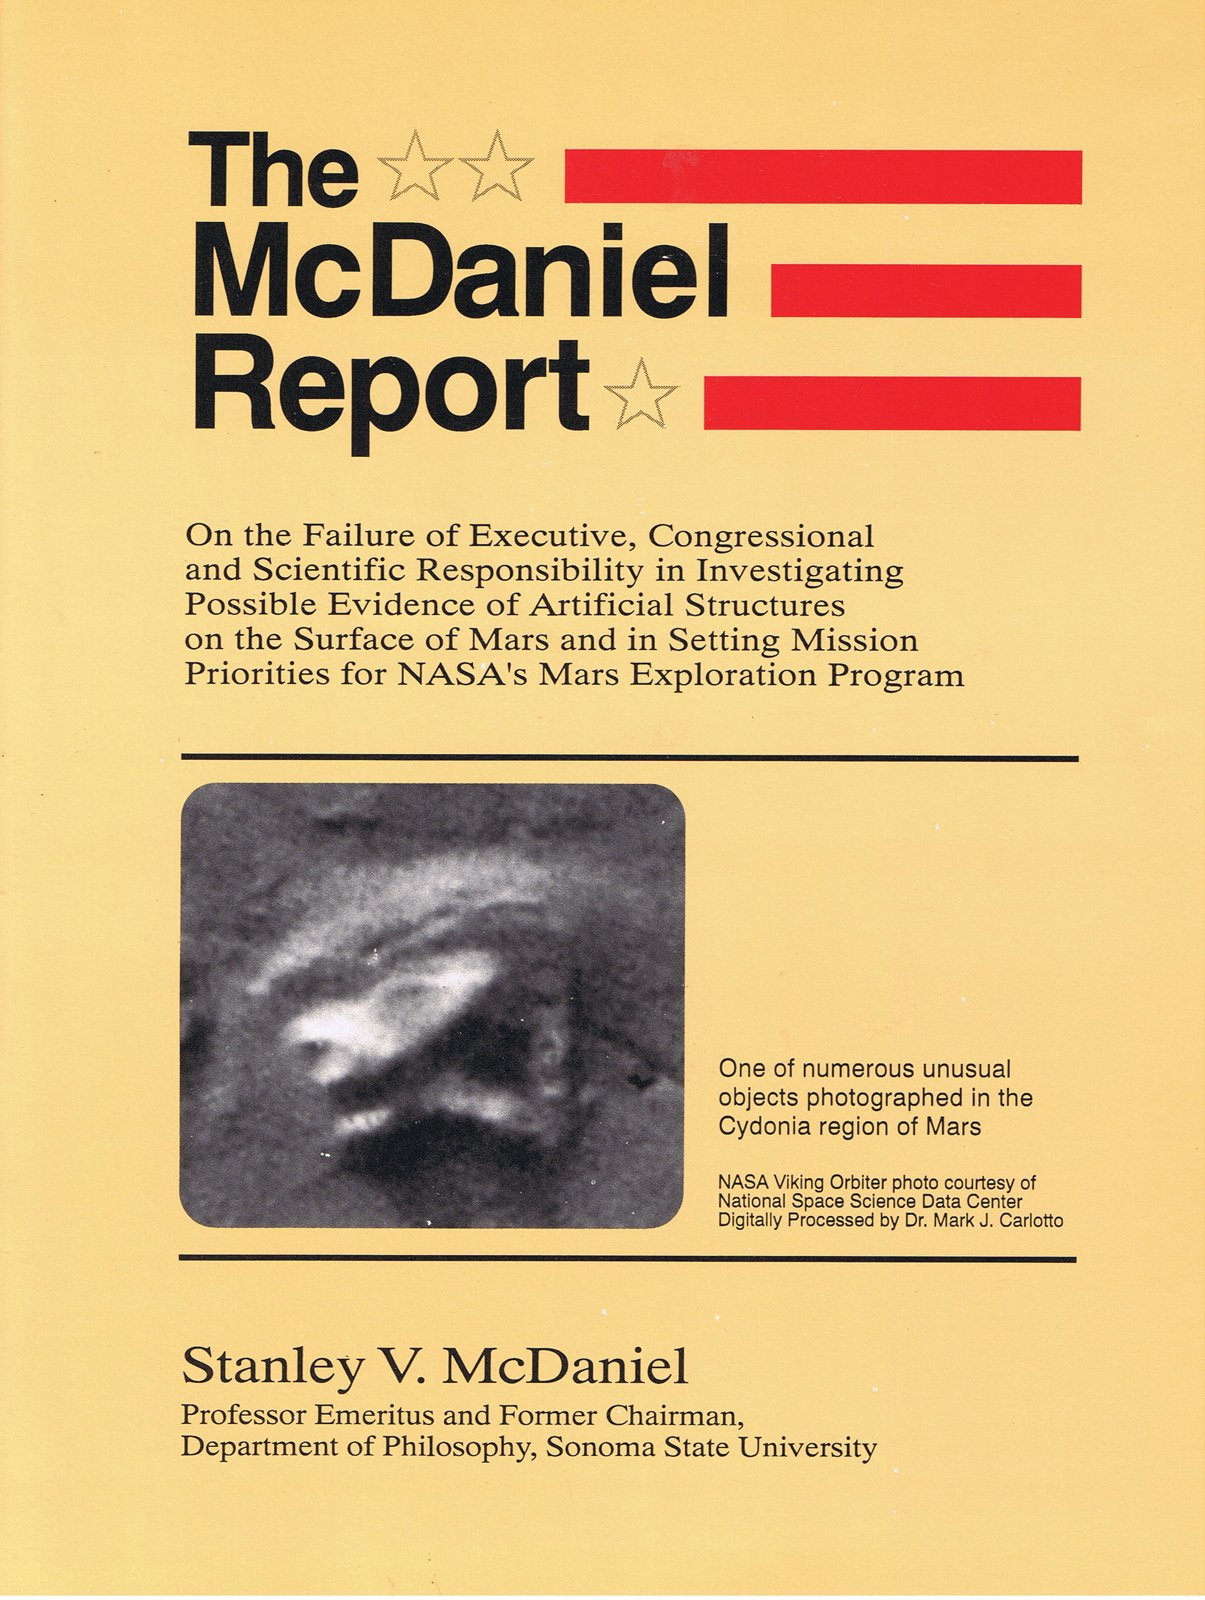 McDaniel Report: On the Failure of Executive, Congressional, and Scientific Responsibility in Investigating Possible Evidence of Artificial Structures on the Surface